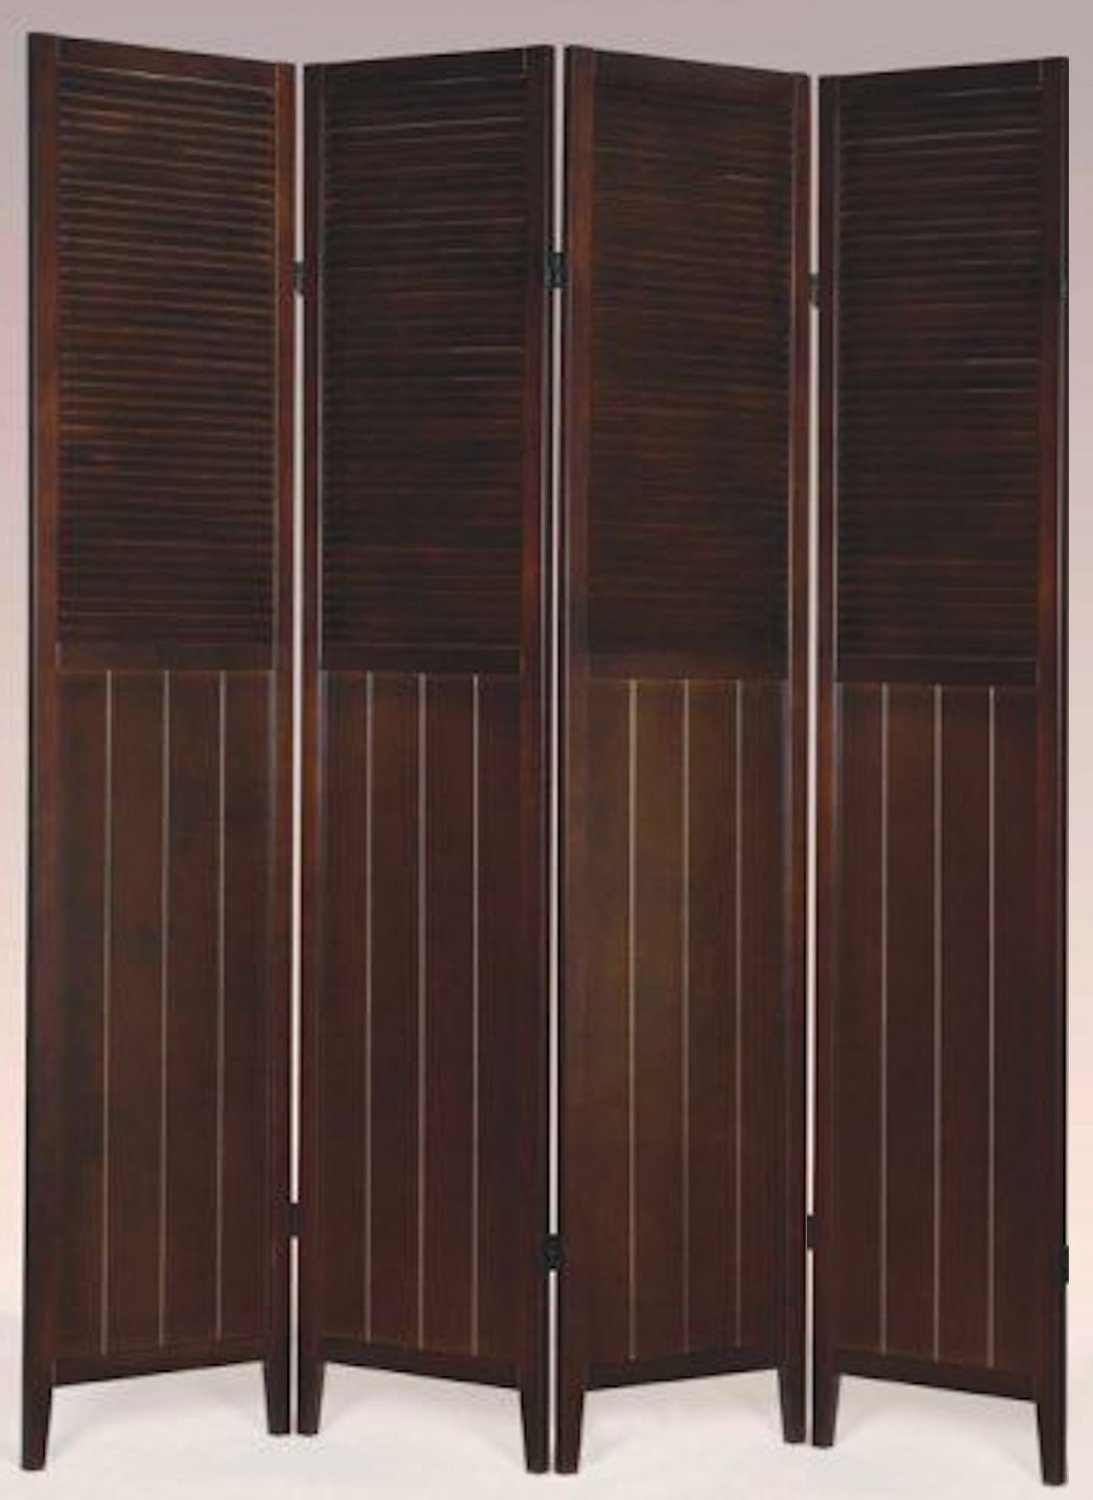 Amazoncom 4 Panel Wood Room Divider White Kitchen Dining